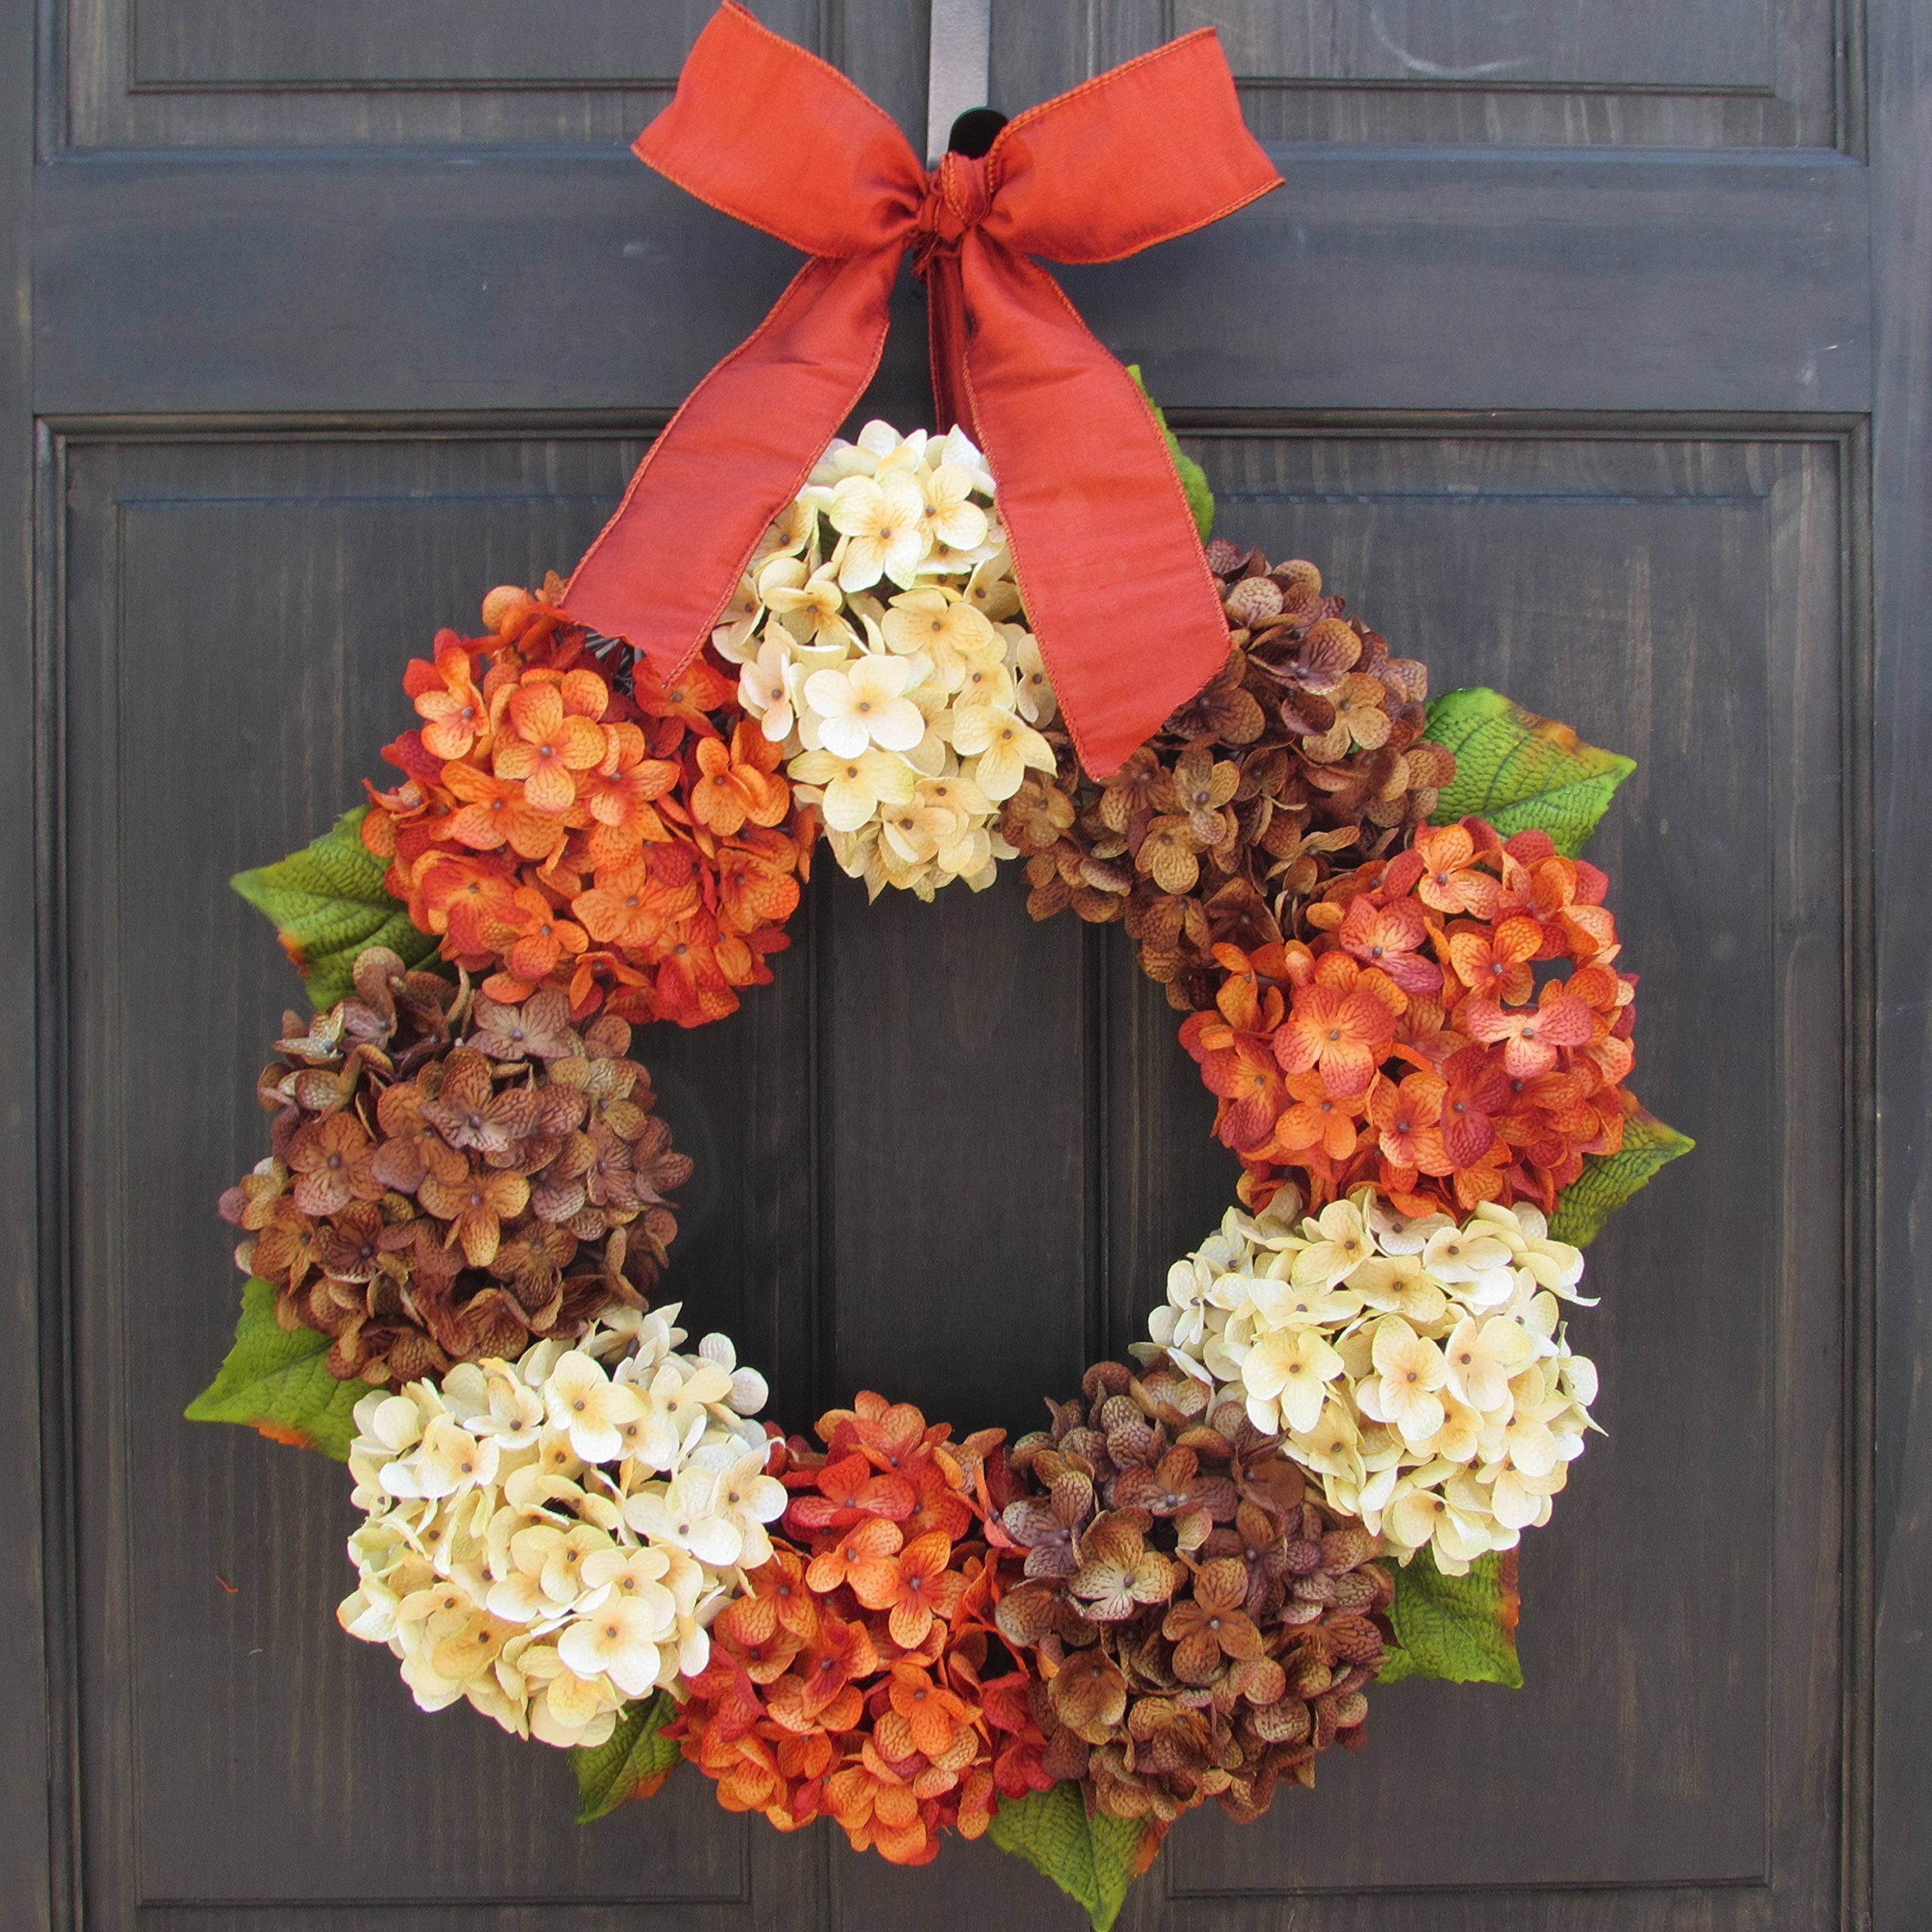 Orange Rust, Cream and Brown Hydrangea Wreath for Thanksgiving Fall Front Door Decor by New England Home Accents